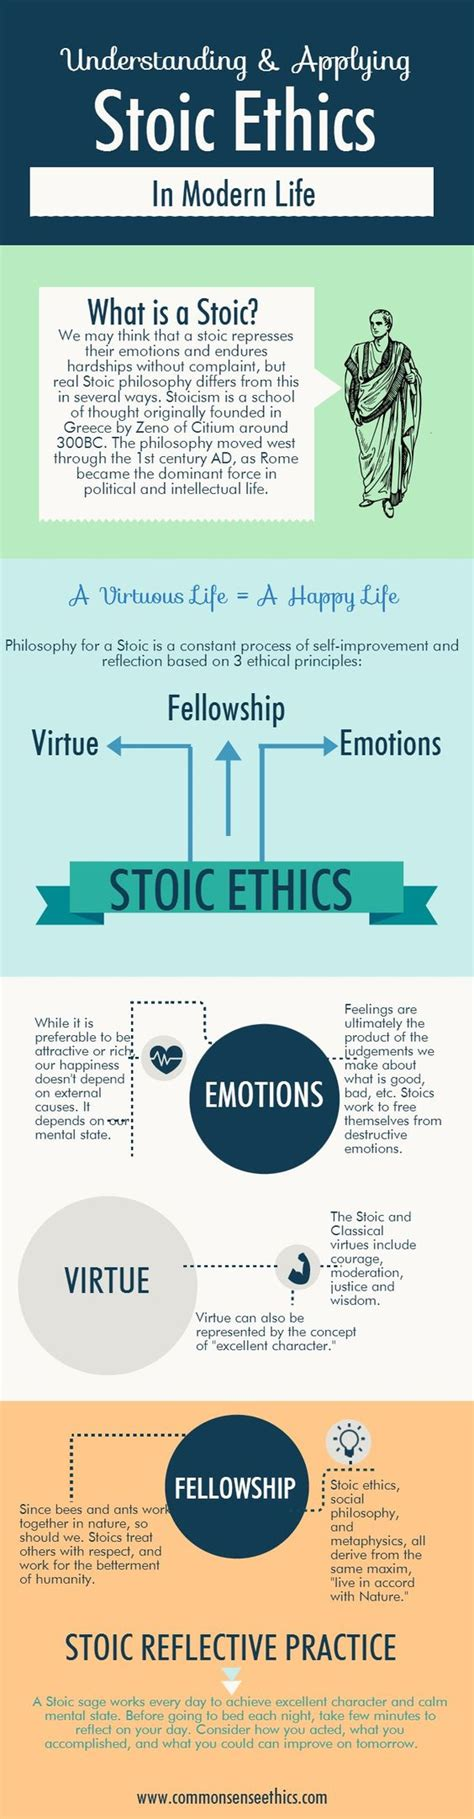 stoicism introduction to the stoic way of beginner s guide to mastery books this guide provides an overview of ancient stoic